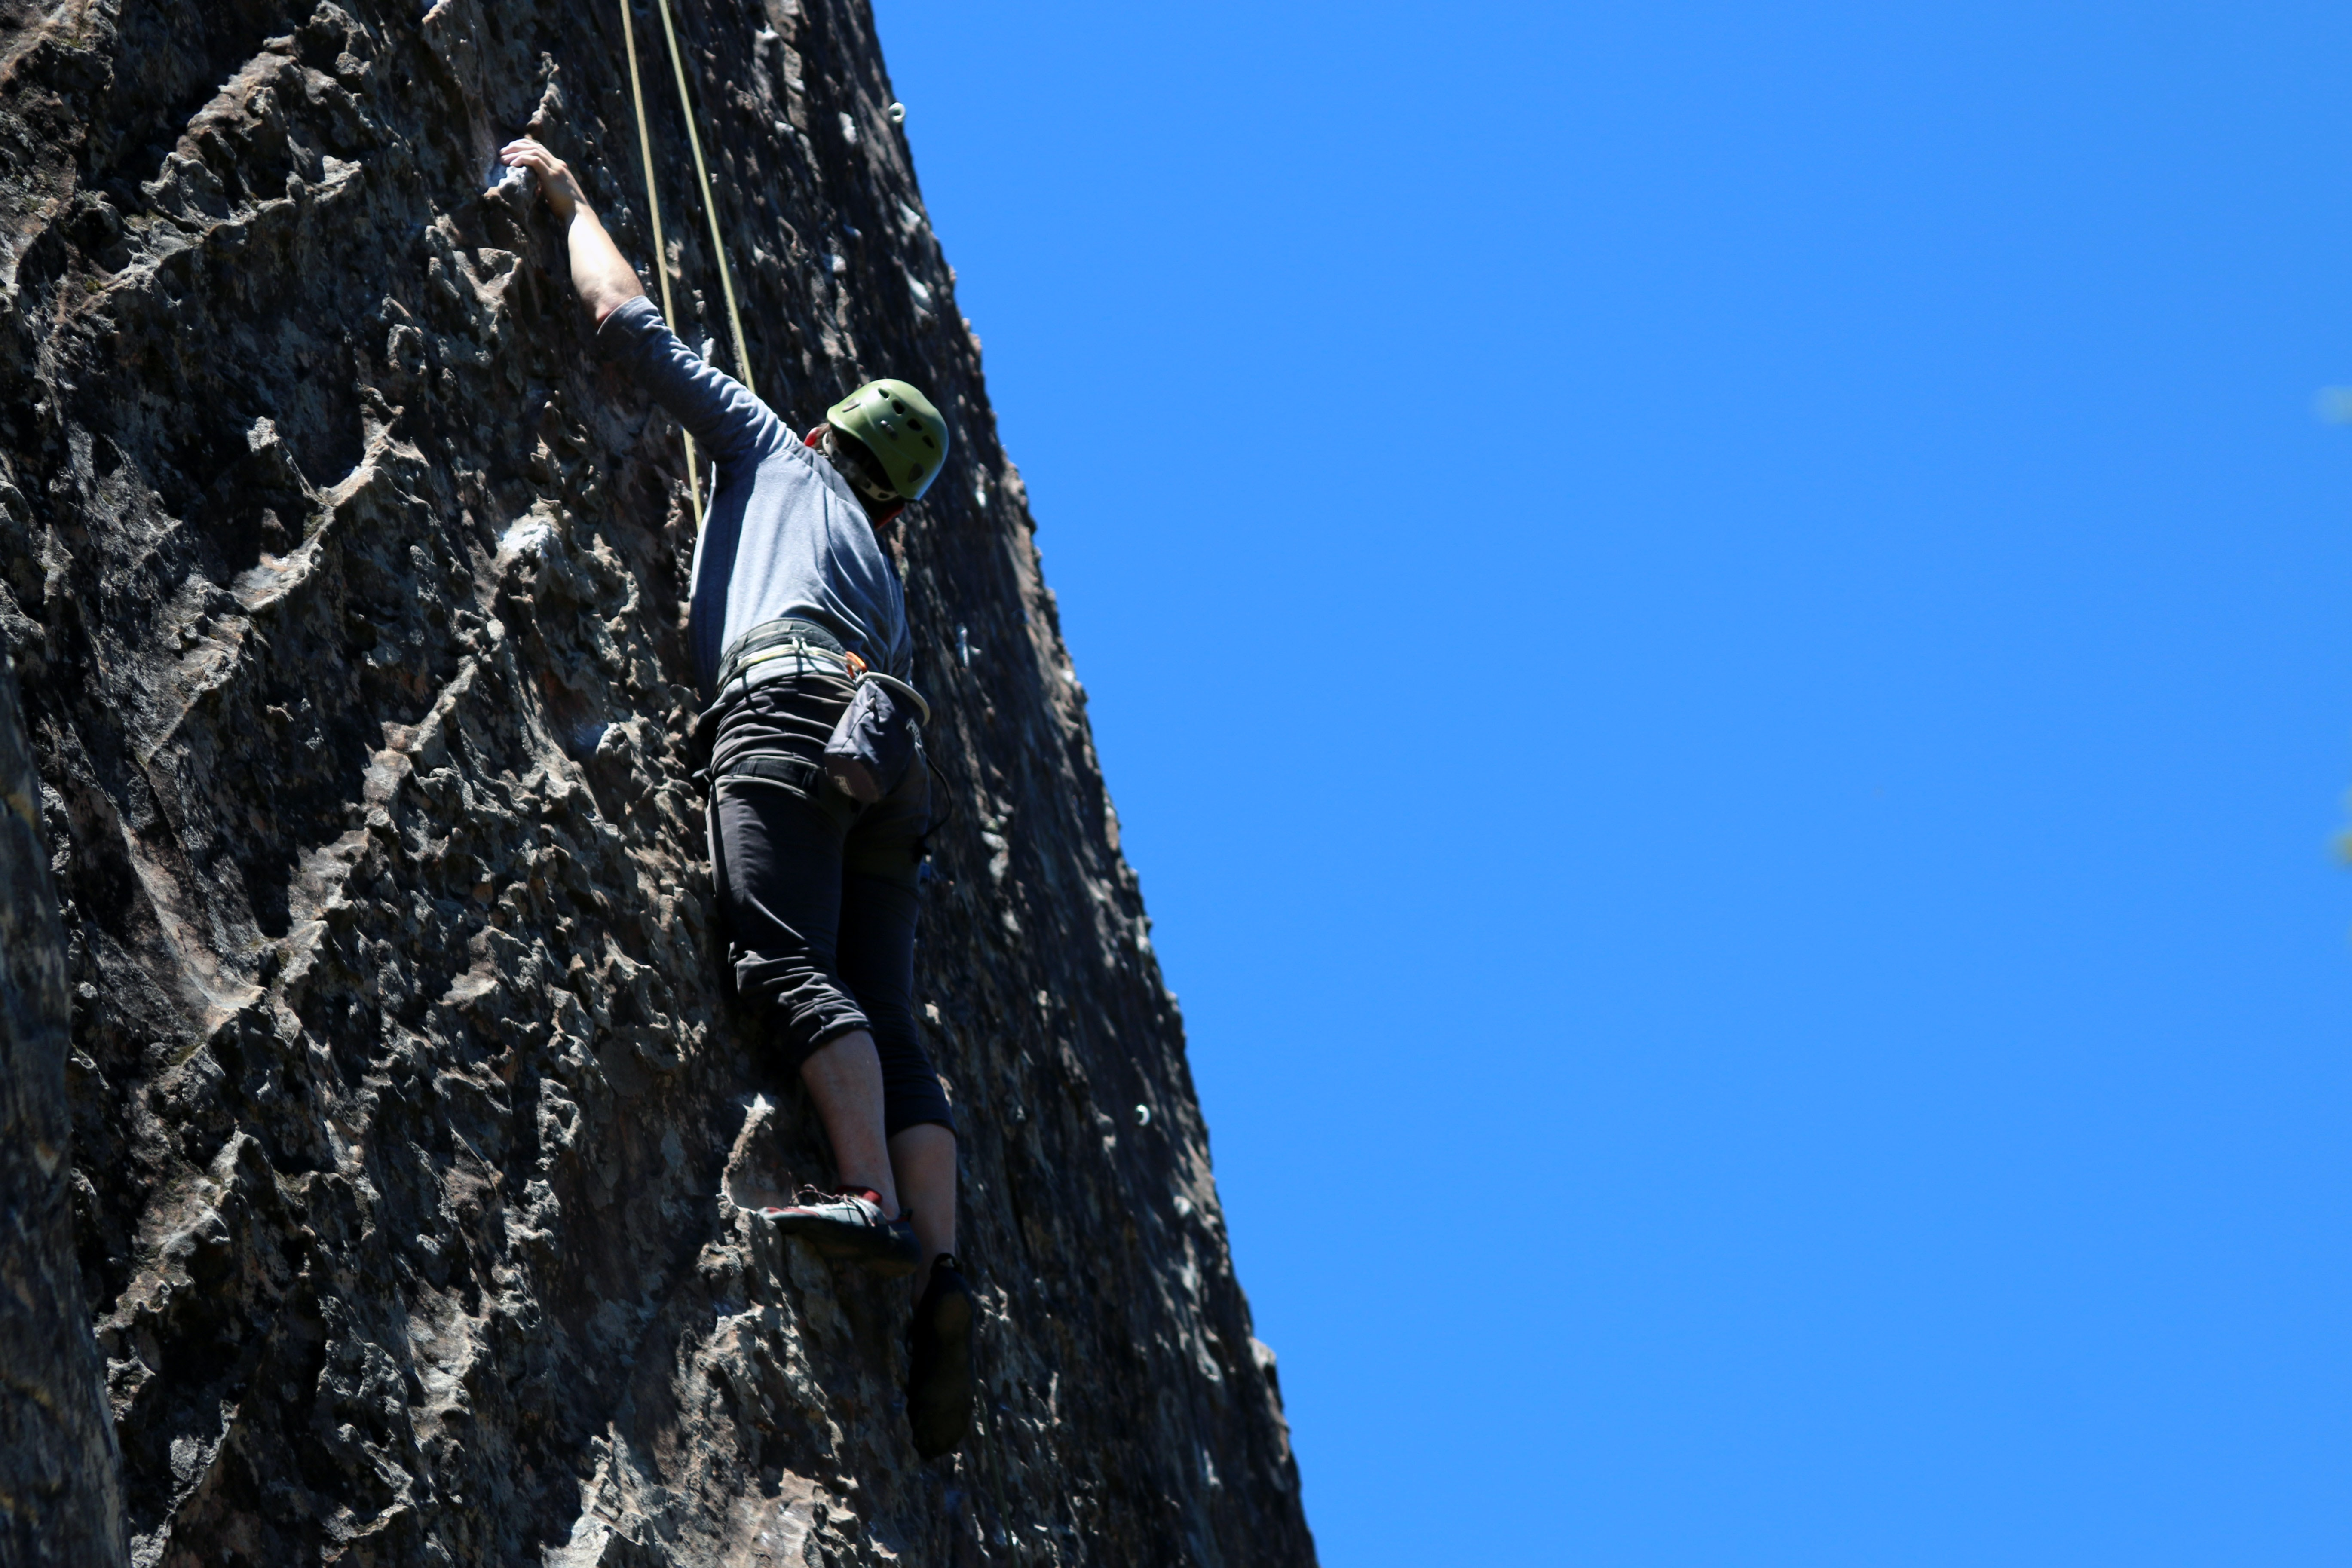 A man rock climbing outdoors on a mountain on a nice day with blue skies